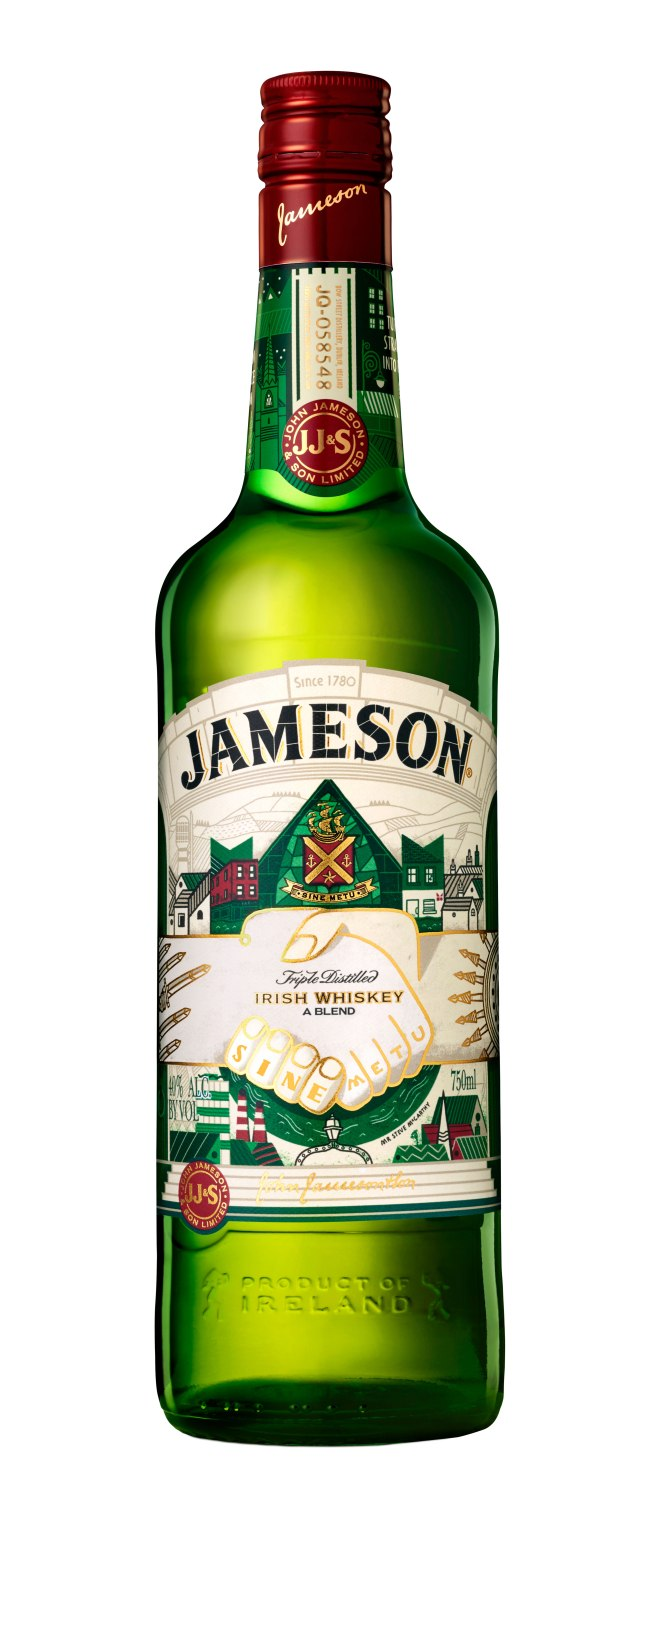 Jameson-Limited-Edition-credit_Jameson Irish Whiskey